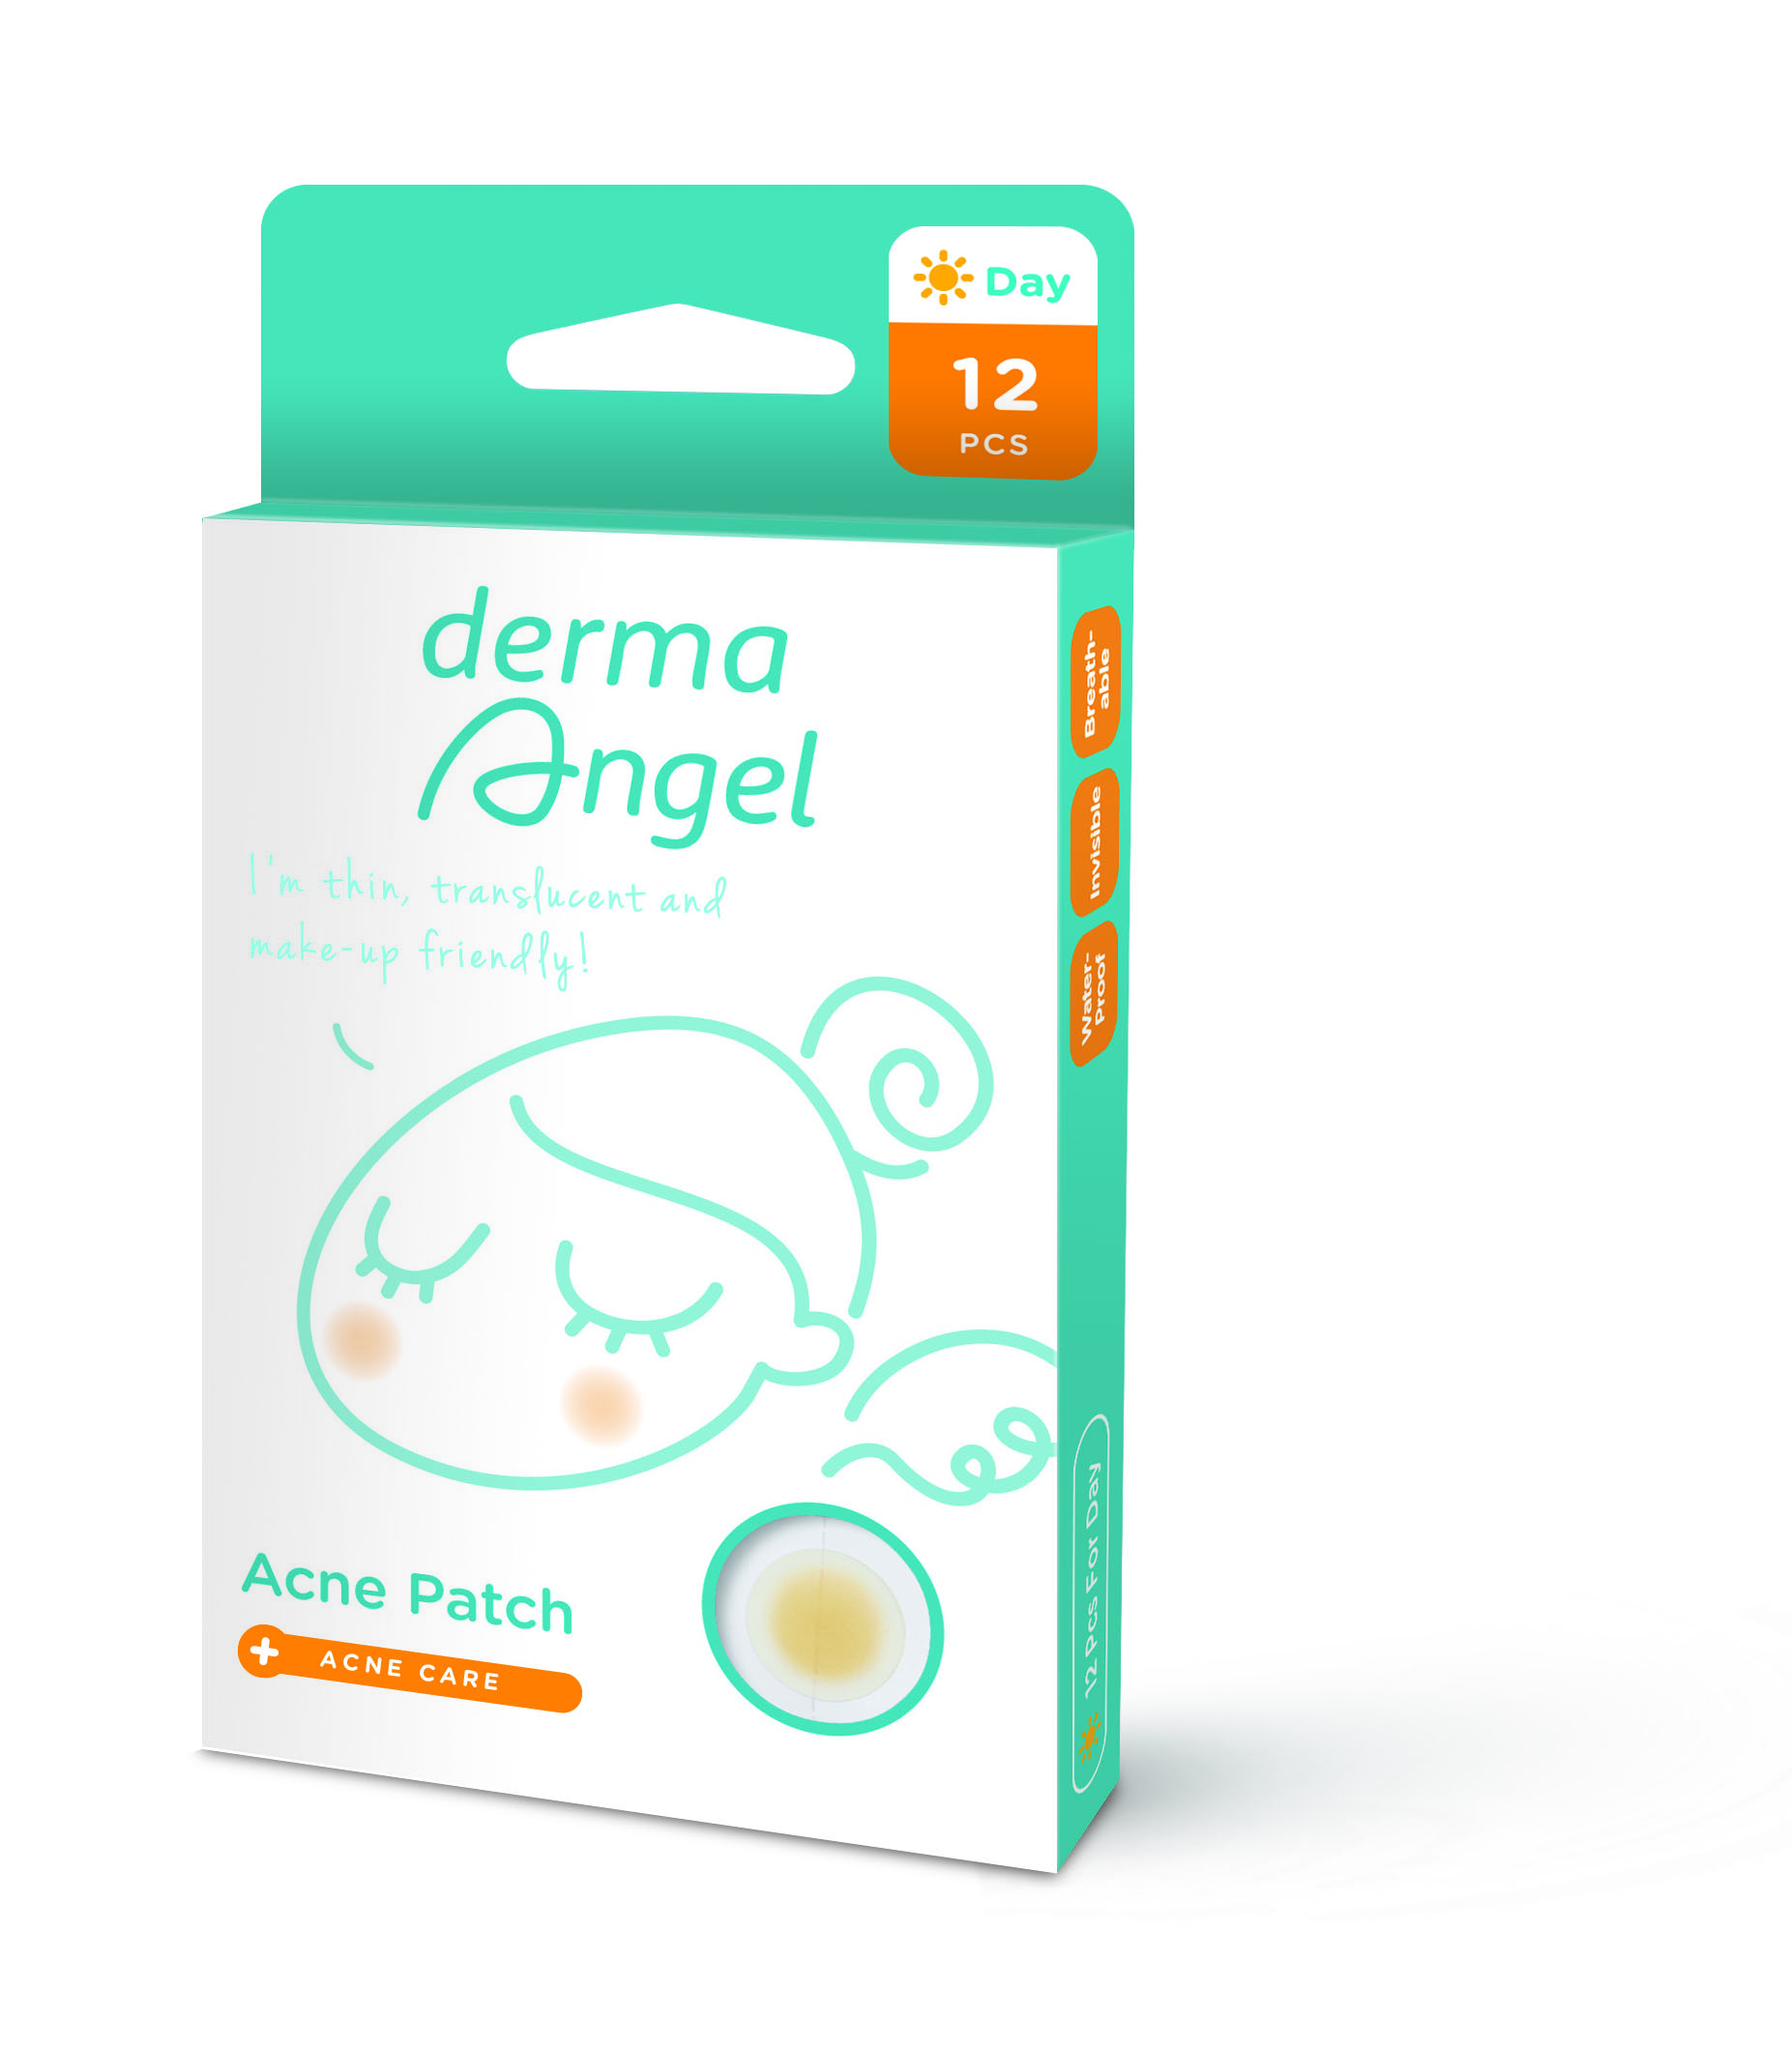 derma Angel acne patch / BenQ Materials Corp.